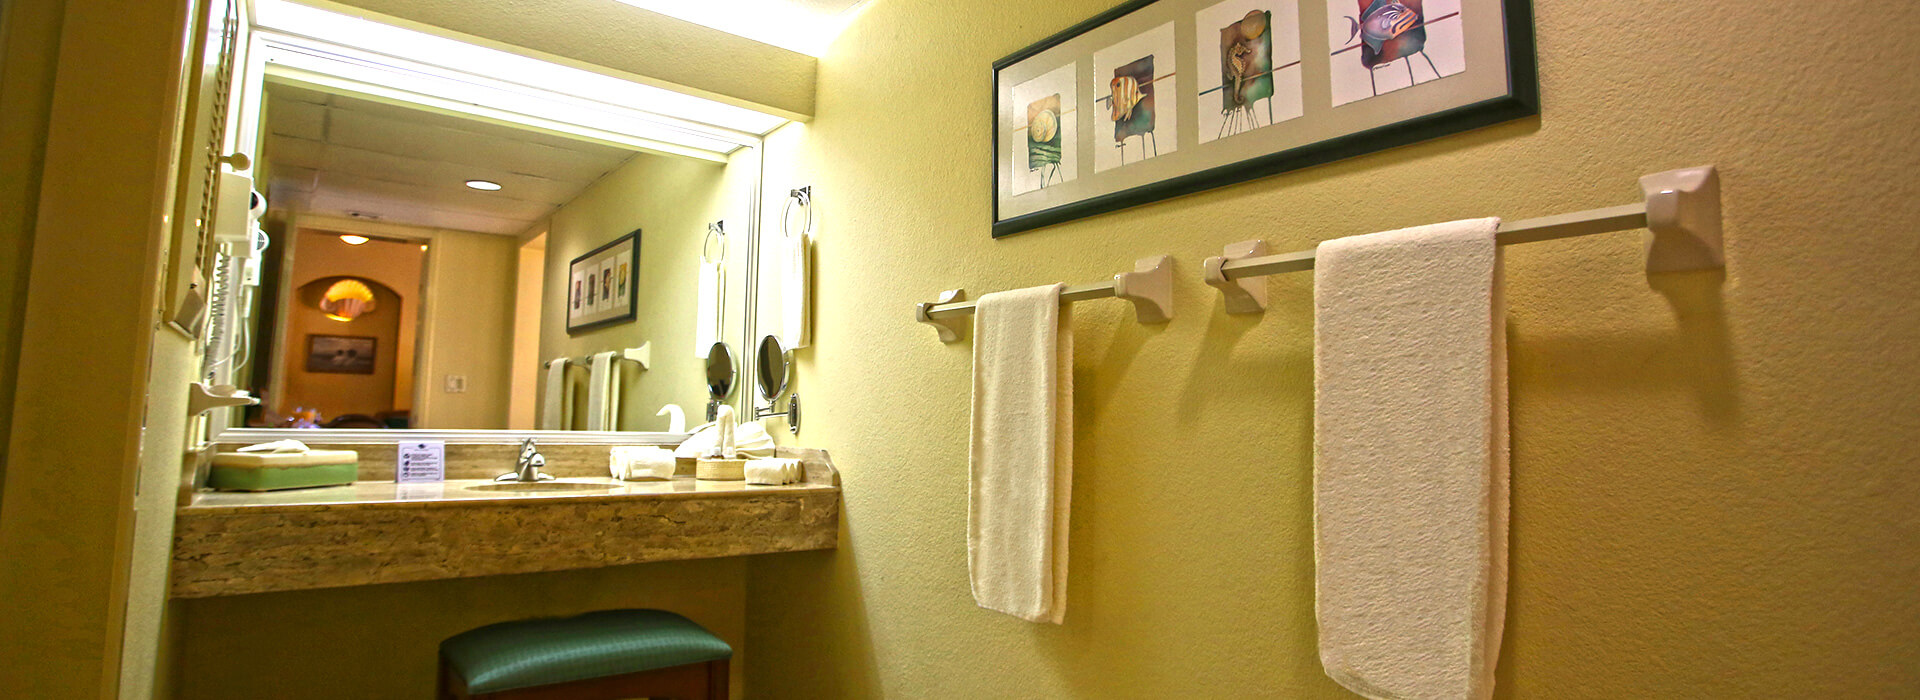 Ocean View Junior Suite featuring full bathroom with Cancun All Inclusive amenities